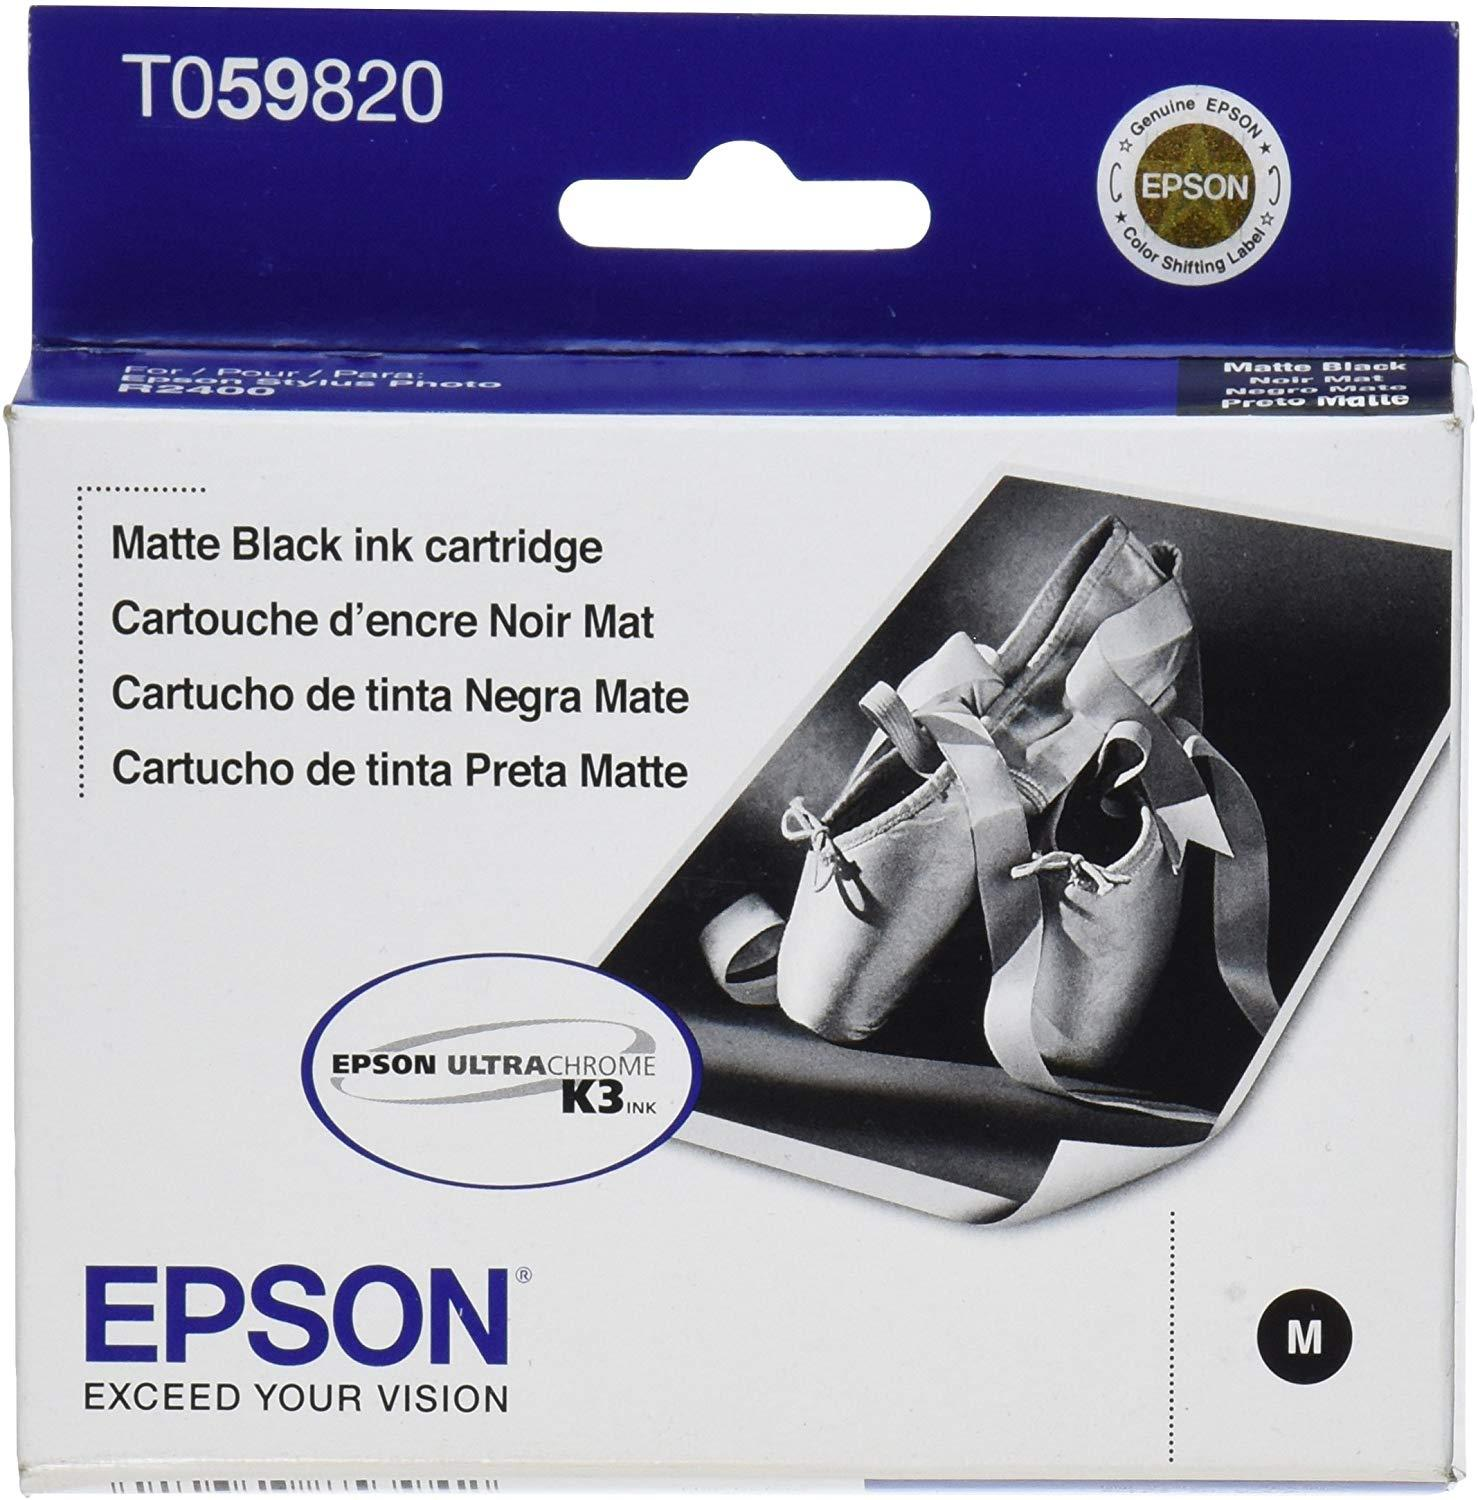 Epson T059820 59 Matte Black Ink Cartridge